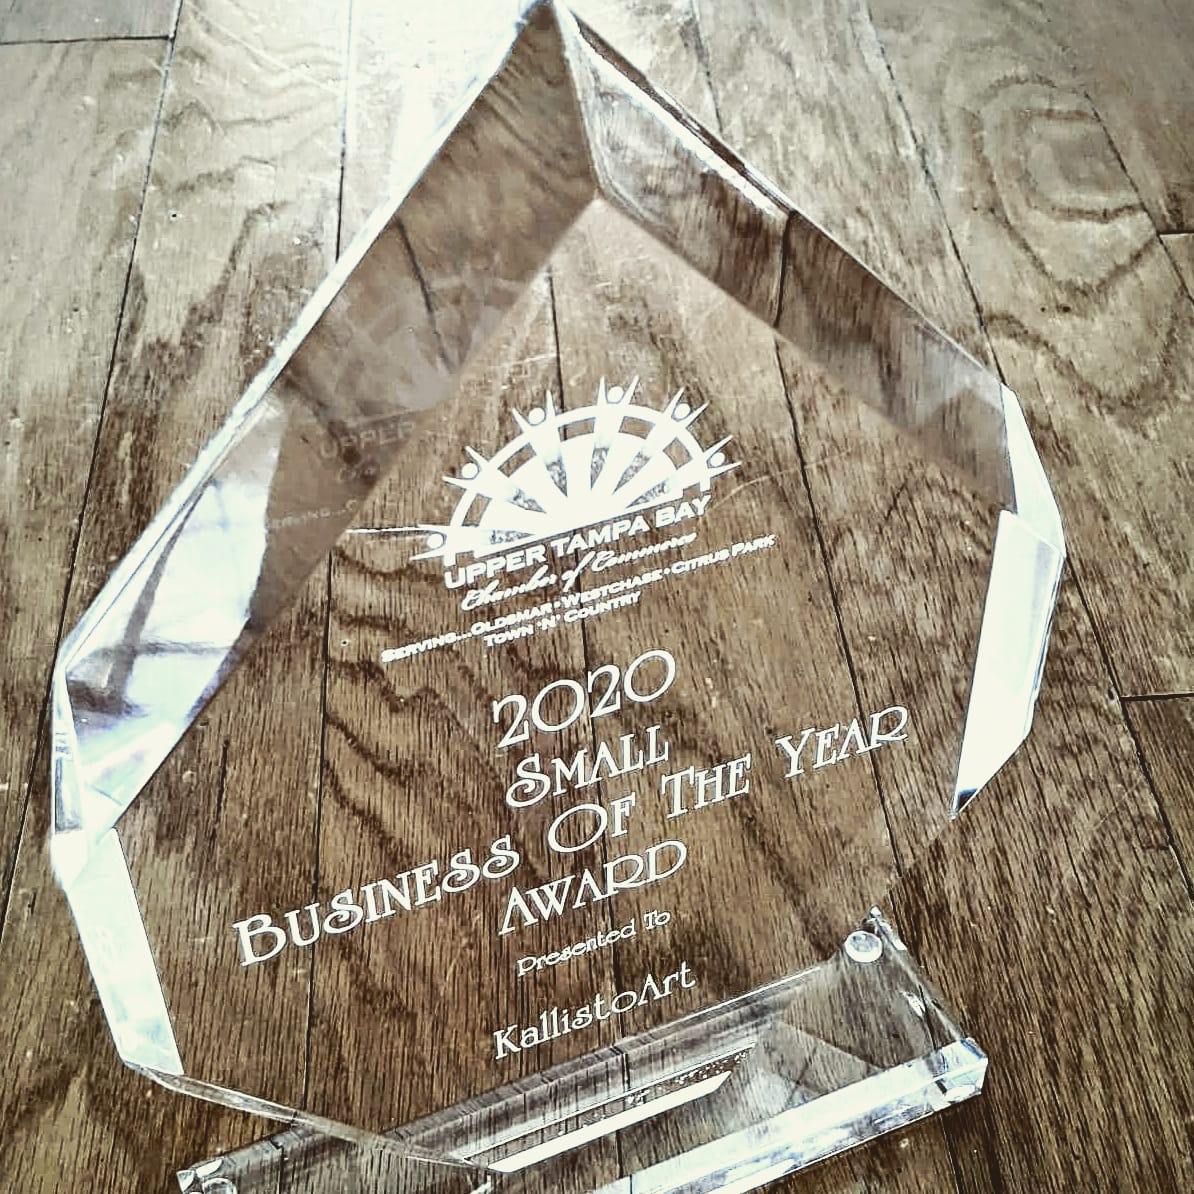 KallistoArt Honored with Upper Tampa Bay Chamber of Commerce 2020 Small Business of the Year Award